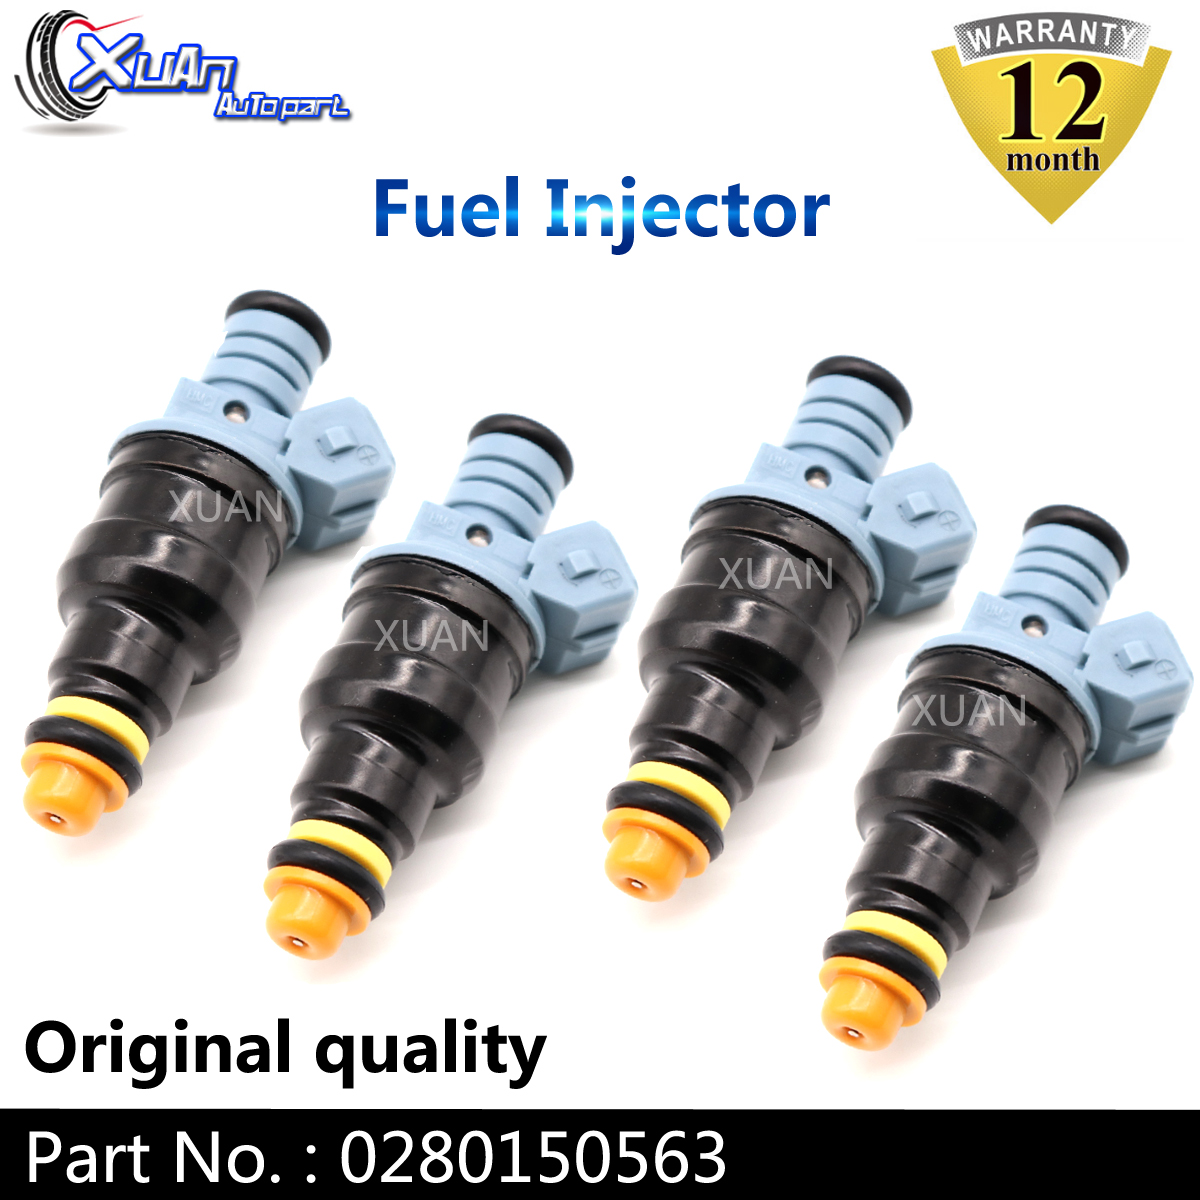 XUAN high performance 1712cc Low Impedance Fuel Injector Nozzles 0280150563 For OPEL 9270291 IVECO 8036314 Tuning & Racing Cars